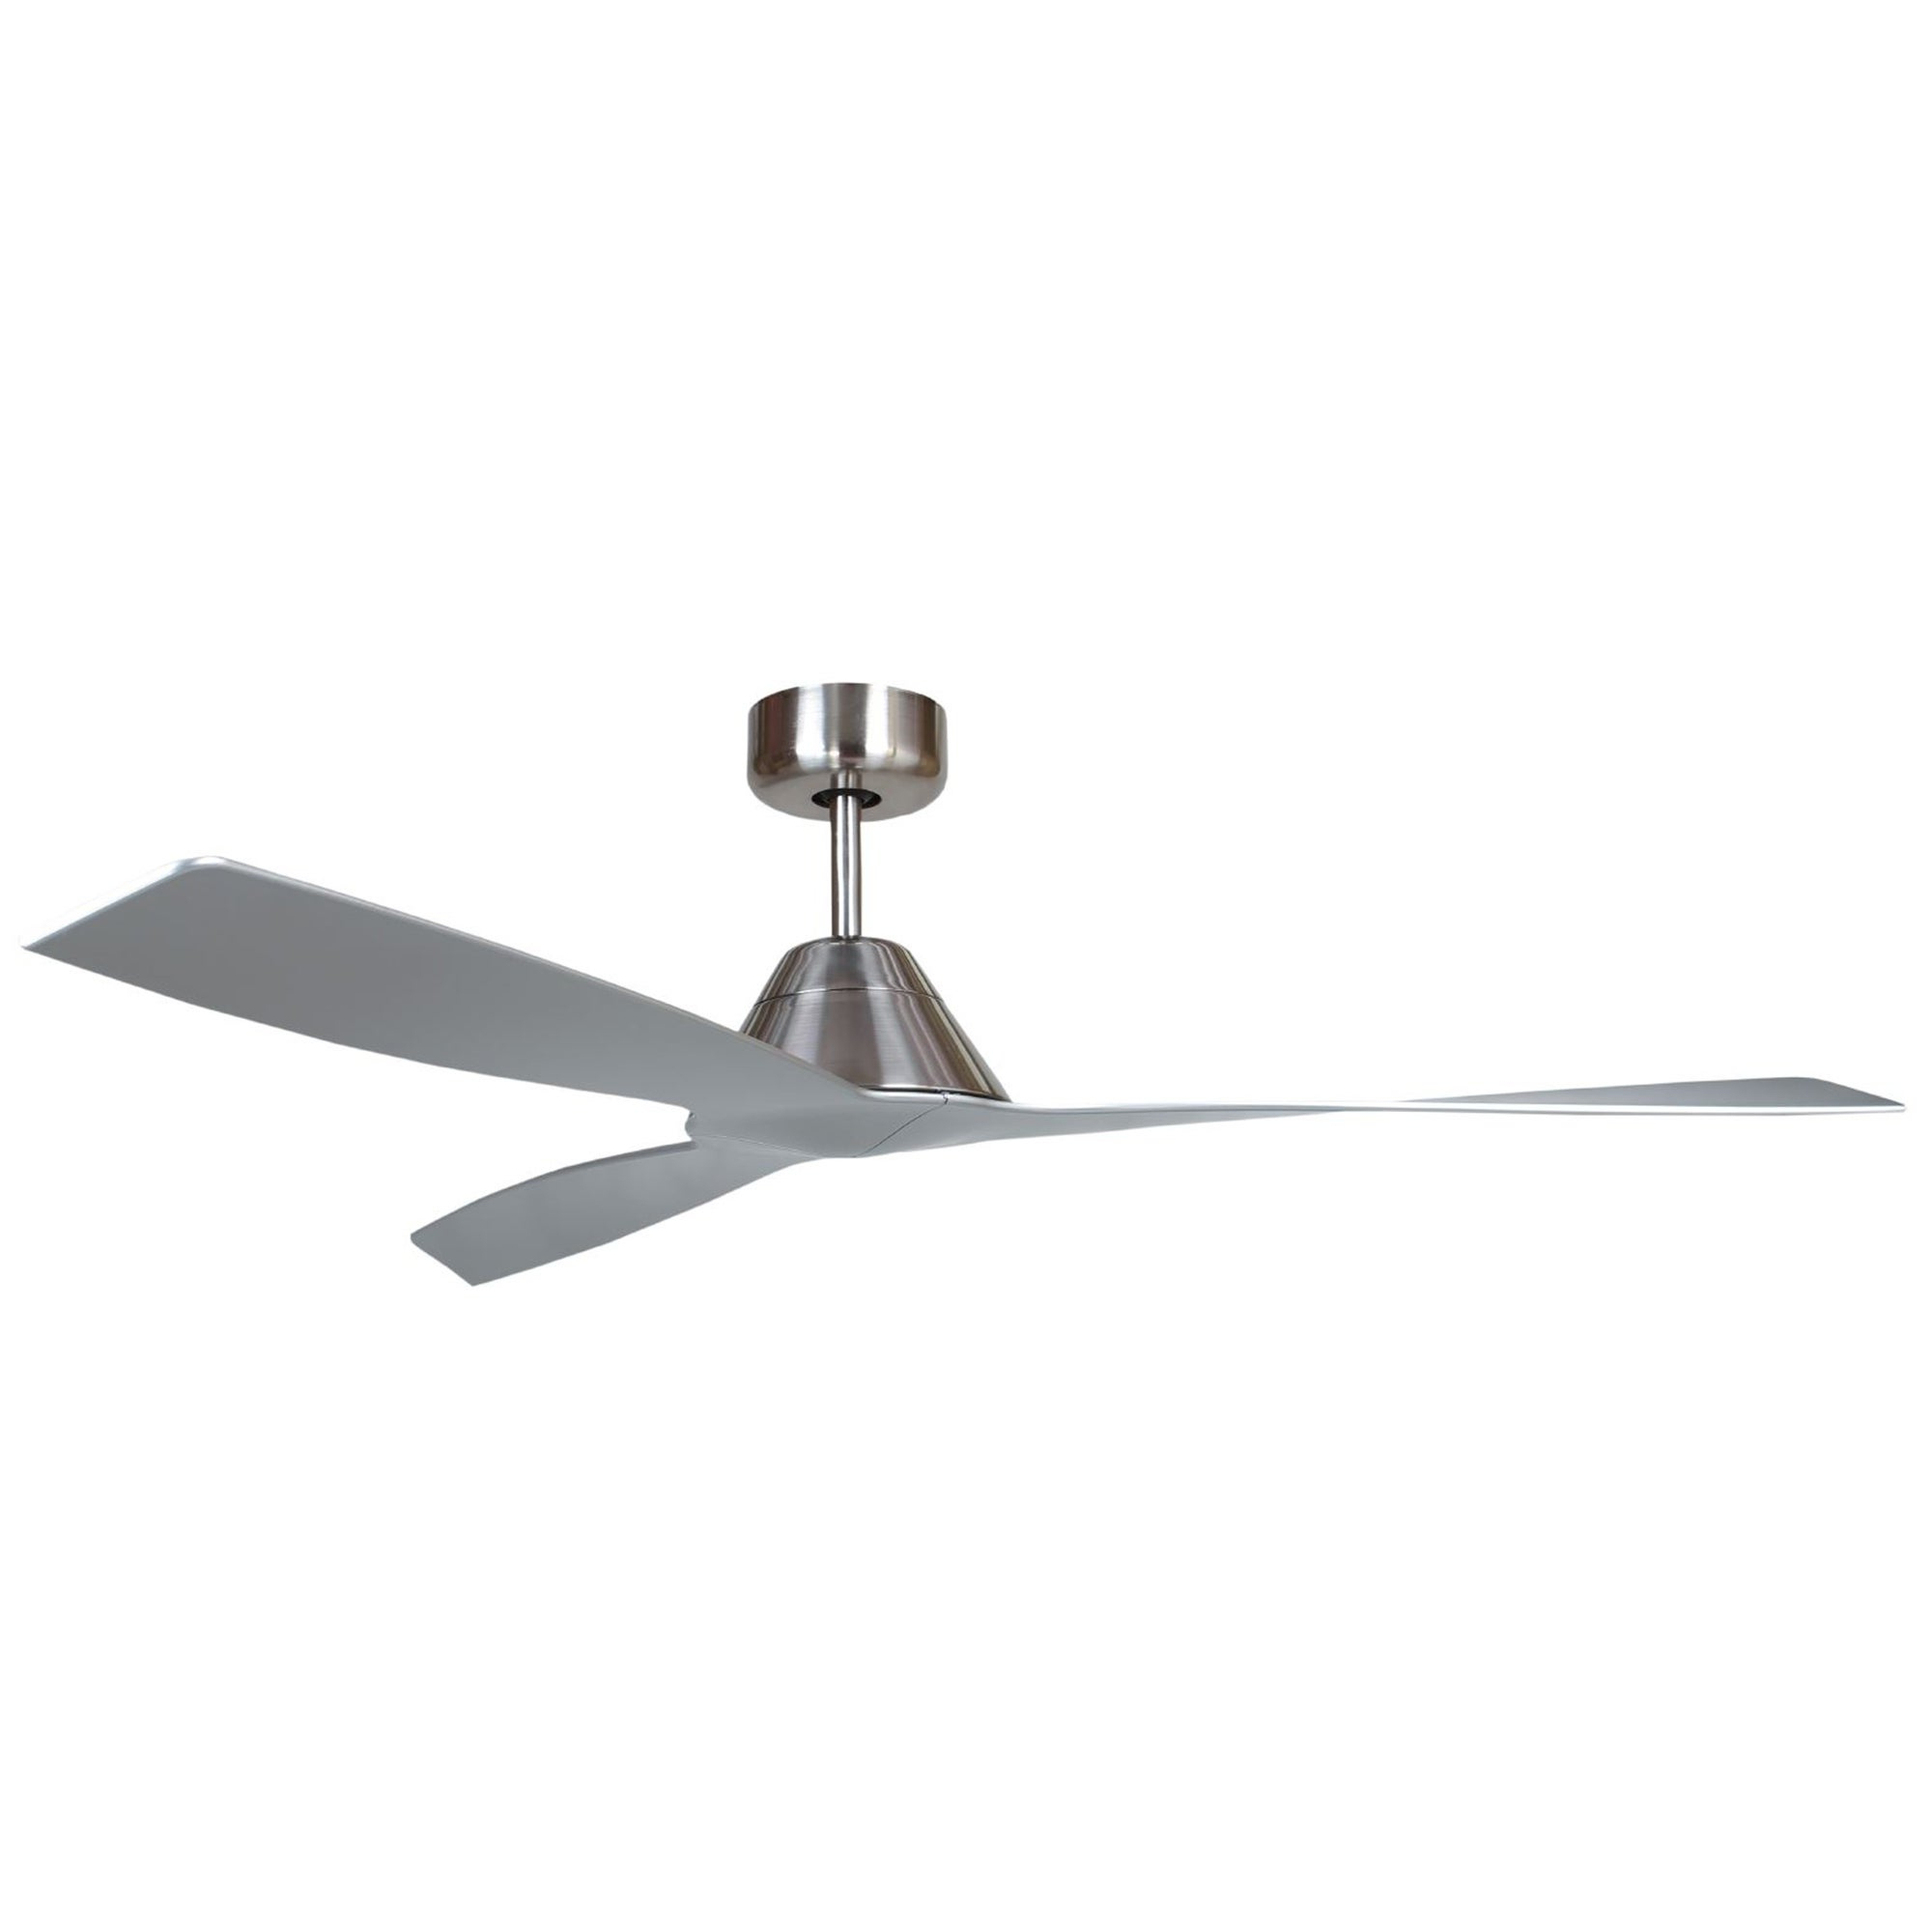 Bali1 Bn 3 Blade Ceiling Fan In Brushed Nickel Finish Pertaining To Well Known Embrace 3 Blade Ceiling Fans (View 5 of 20)